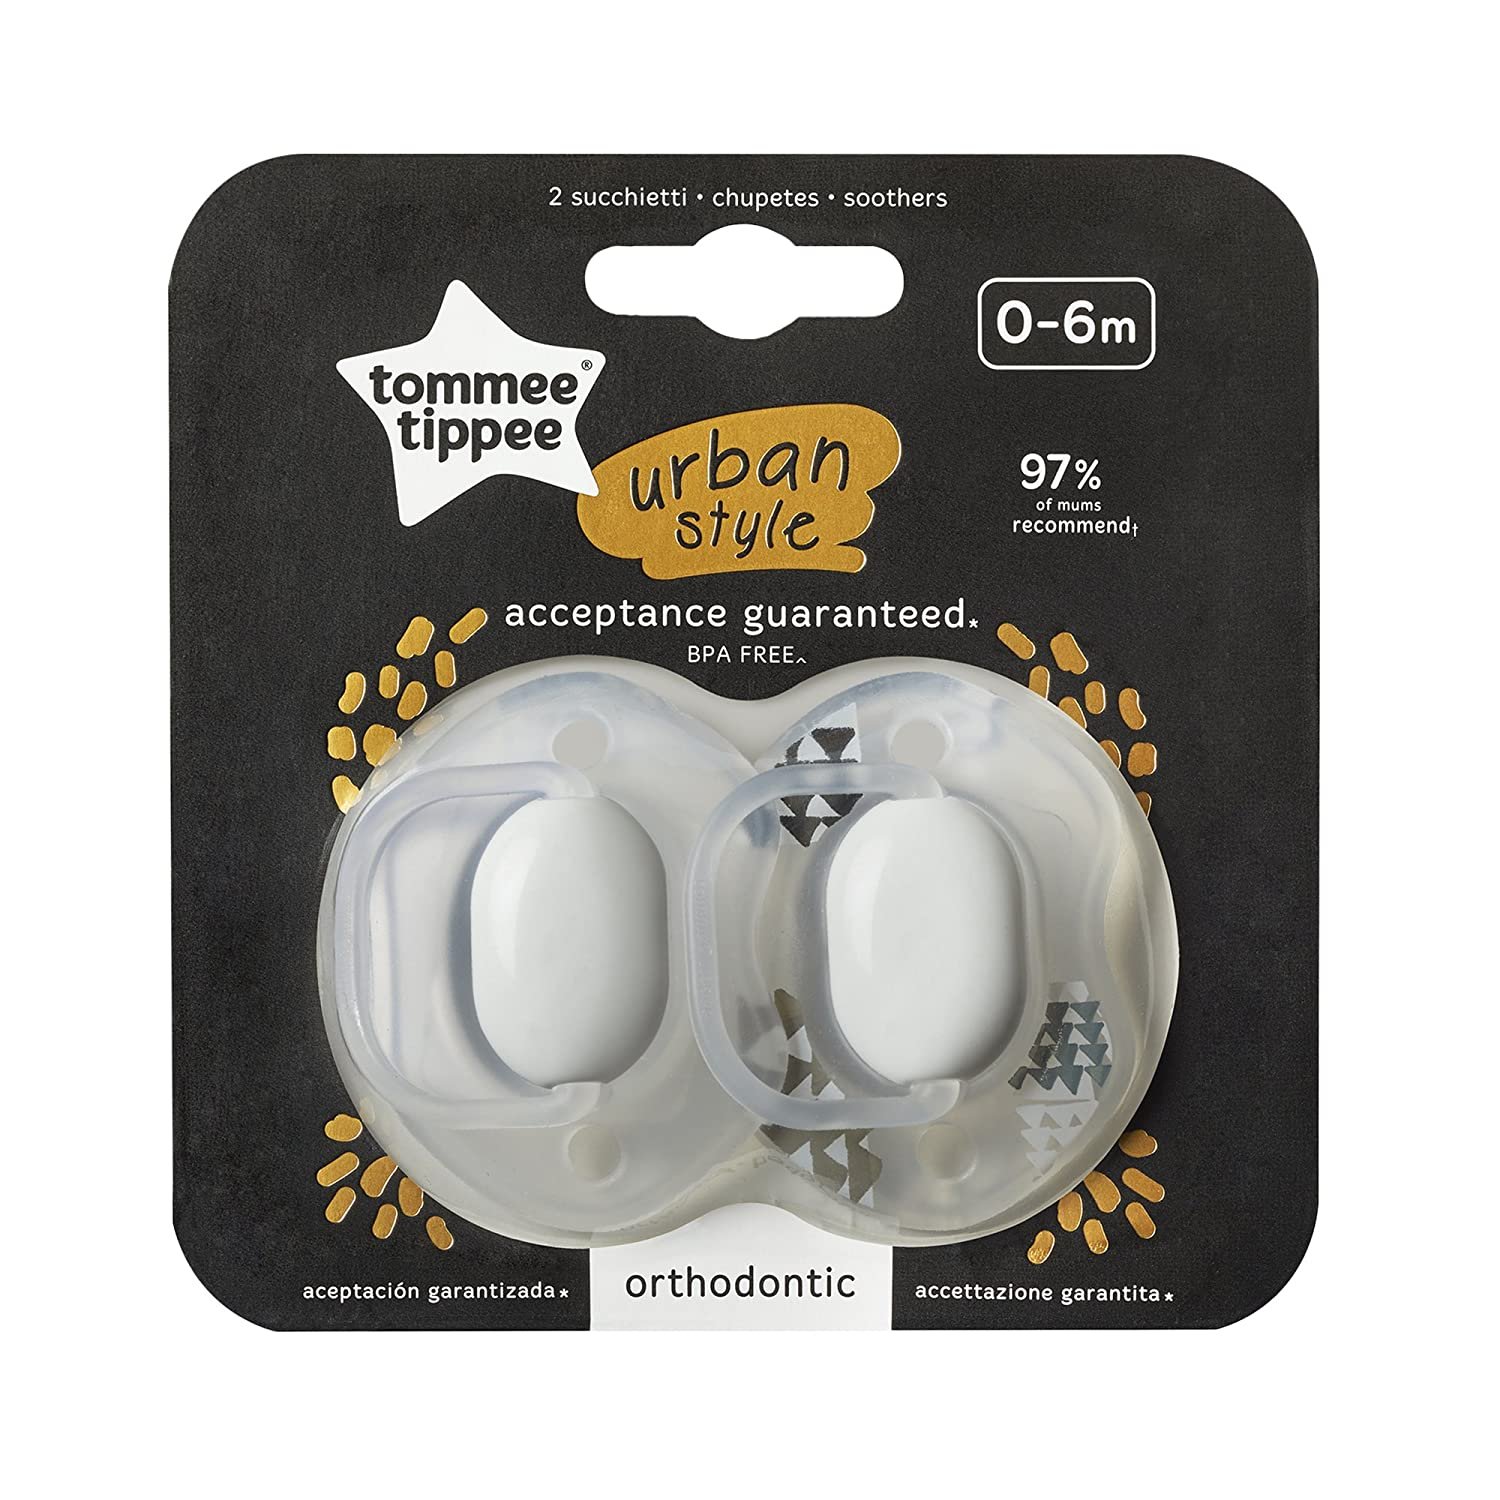 Tommee Tippee 22644 - Chupetes